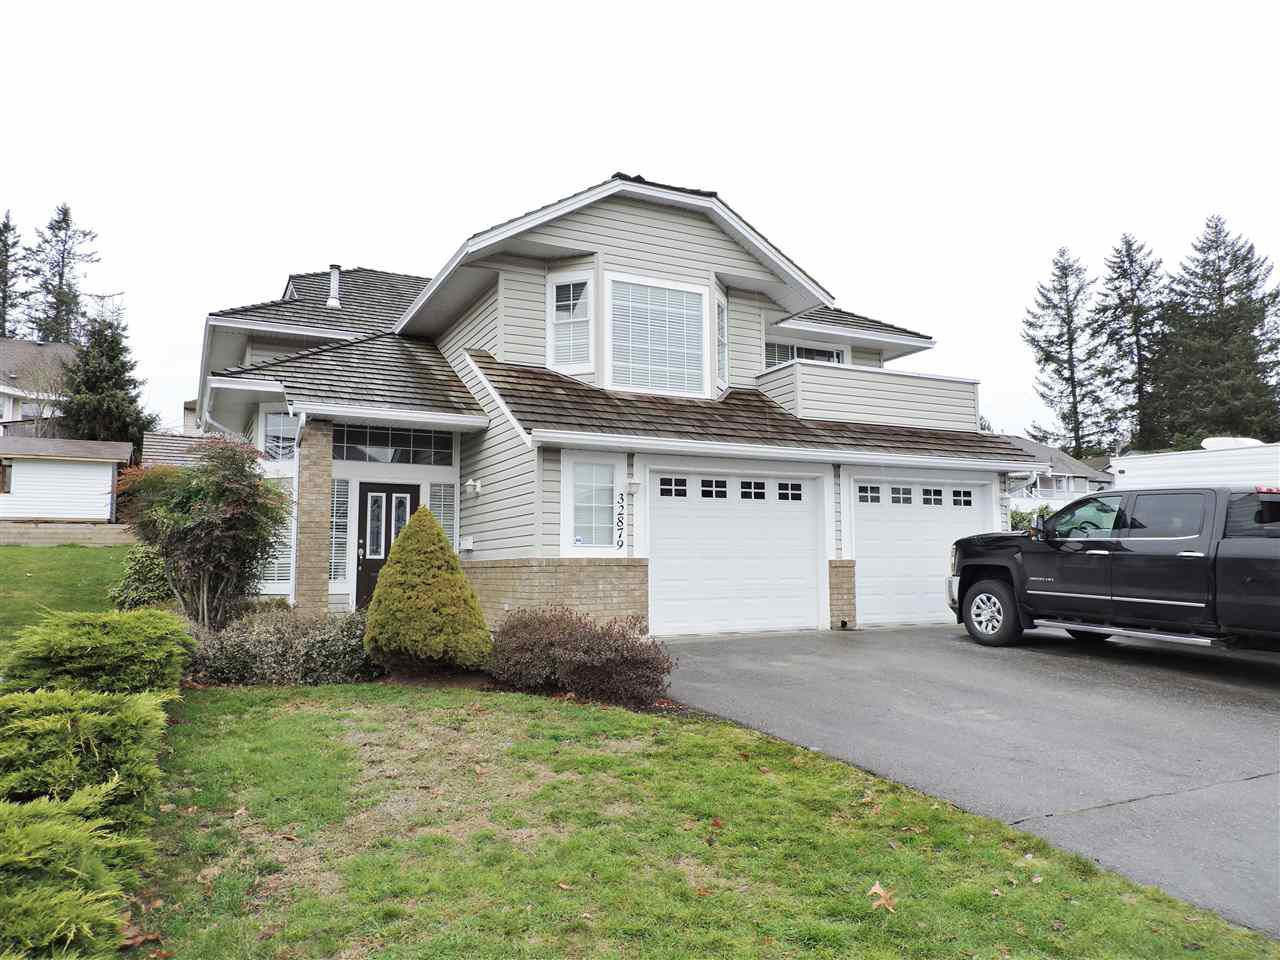 Main Photo: 32879 Best Avenue in Mission: Mission BC House for sale : MLS®# R2244058